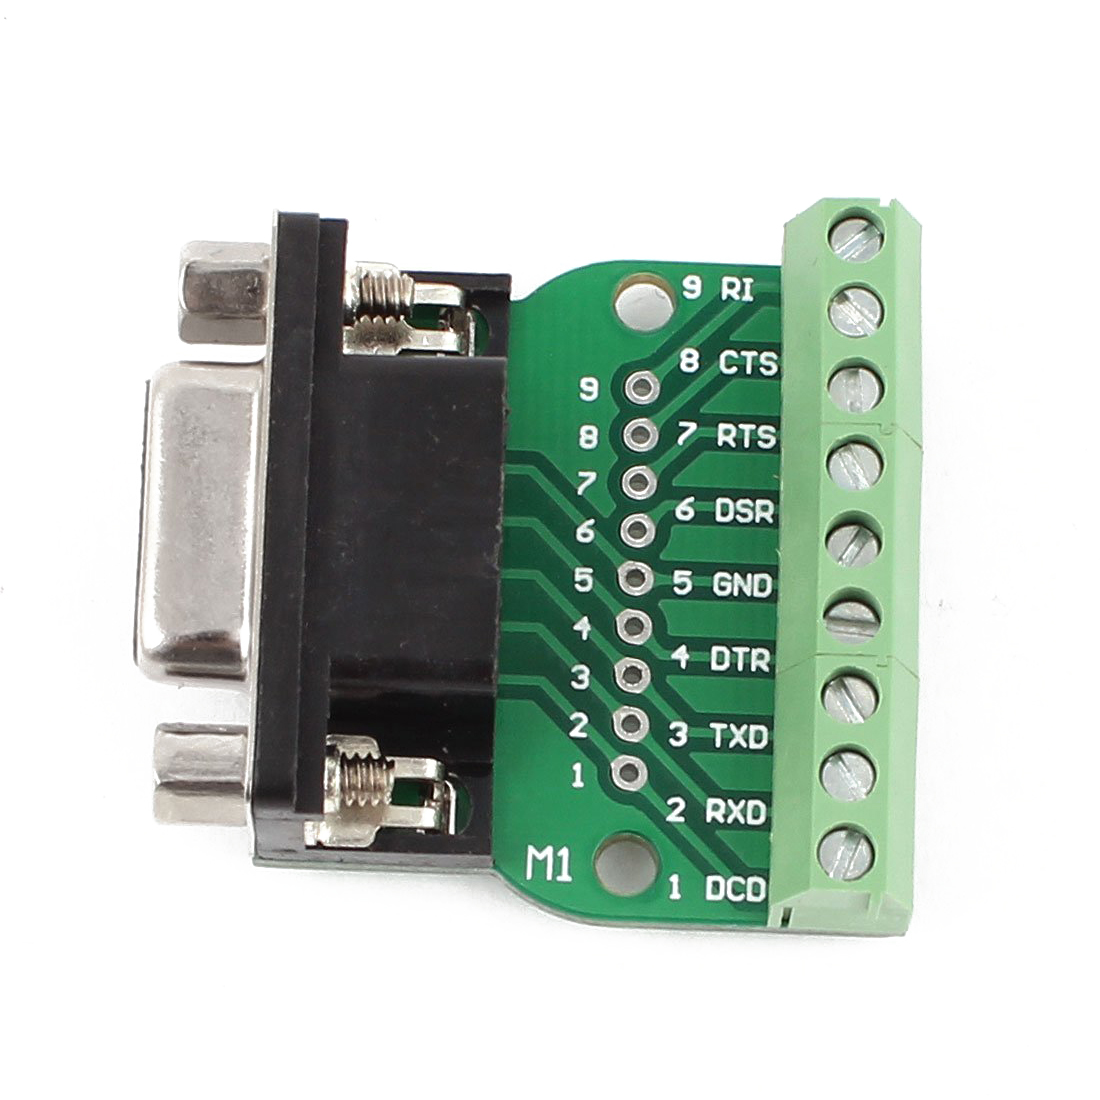 High Quality DB9 RS232 Serial to Terminal Female Adapter Connector Breakout Board Black+Green 2pcs hdmi 2 0 hd adapter male connector breakout to 19p terminal board no need soldering high quality with housing shell